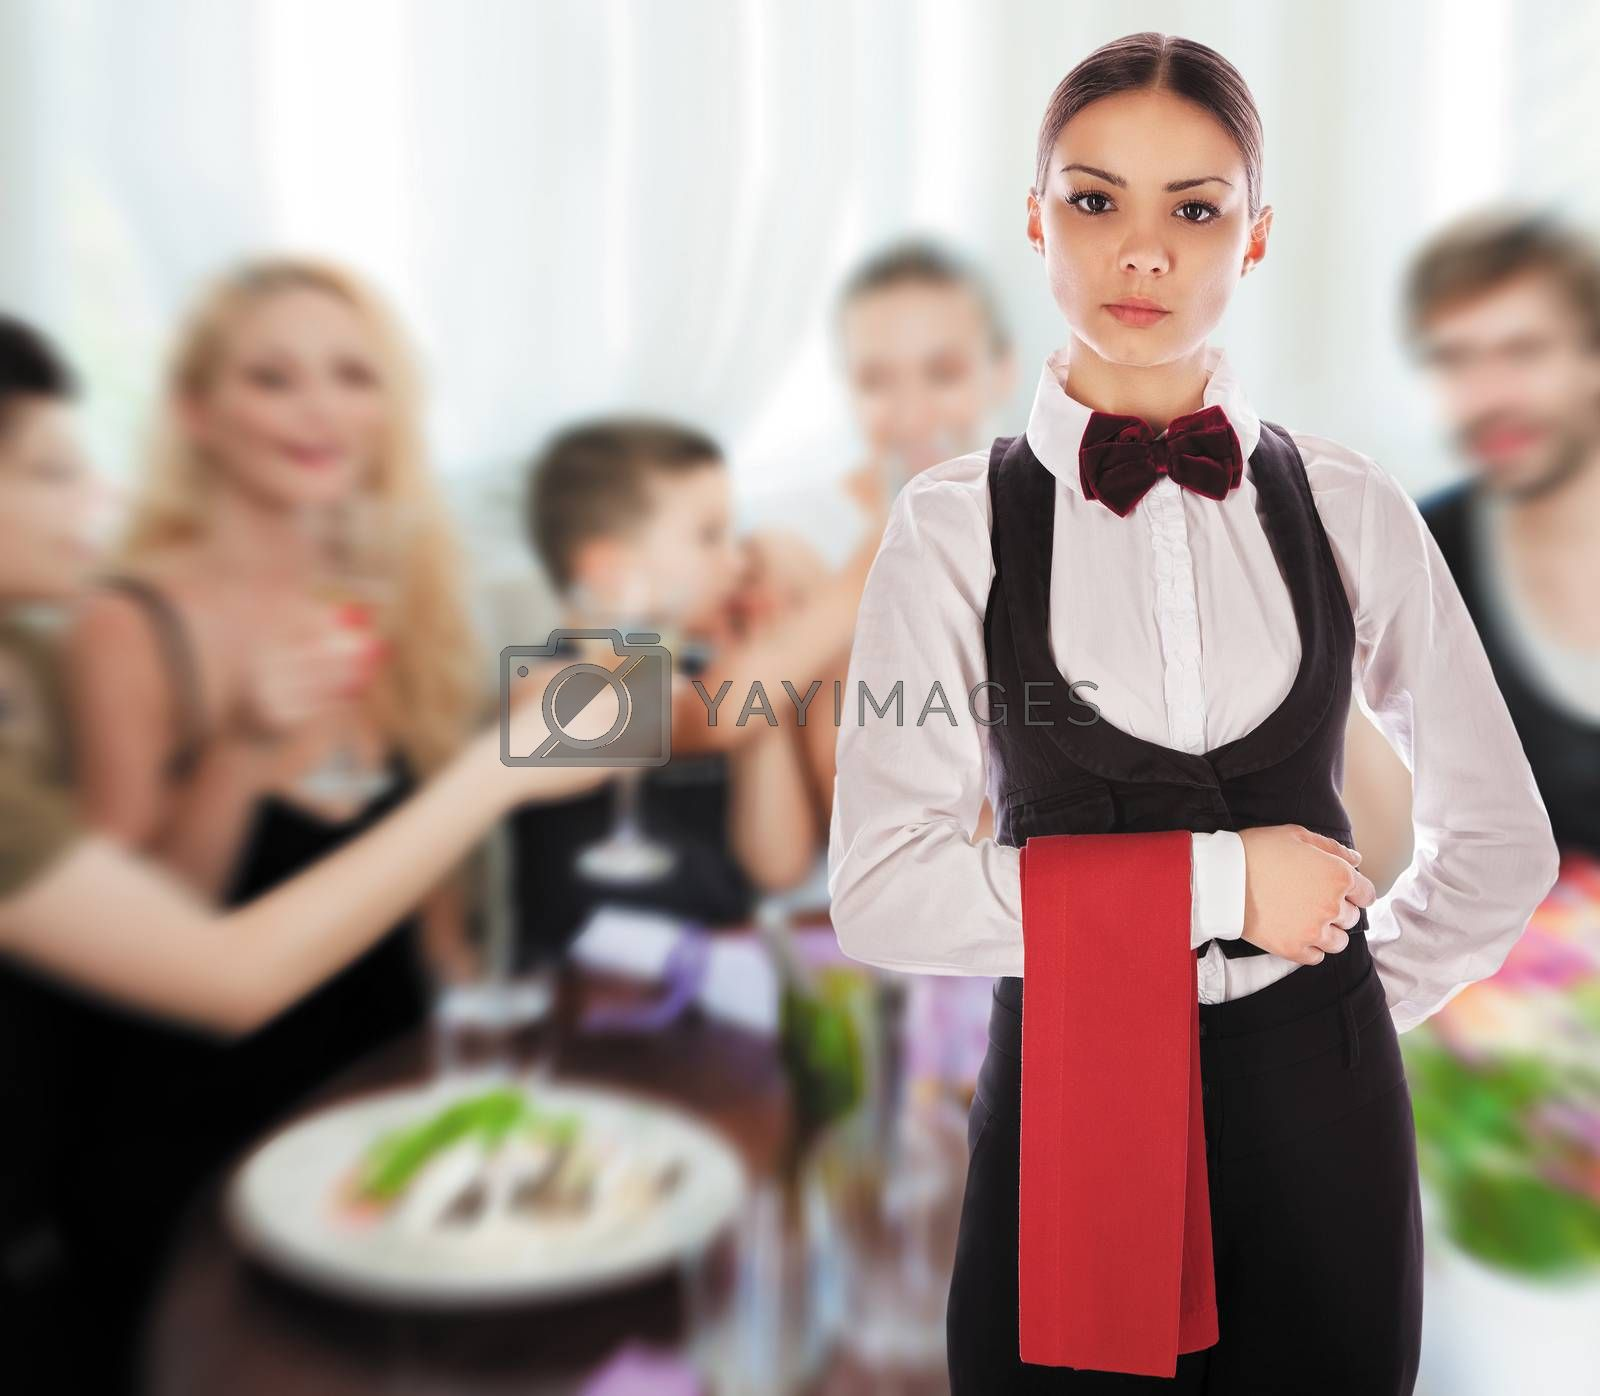 Waitress with a red cloth and tie in restaurant. Isolated with work path.